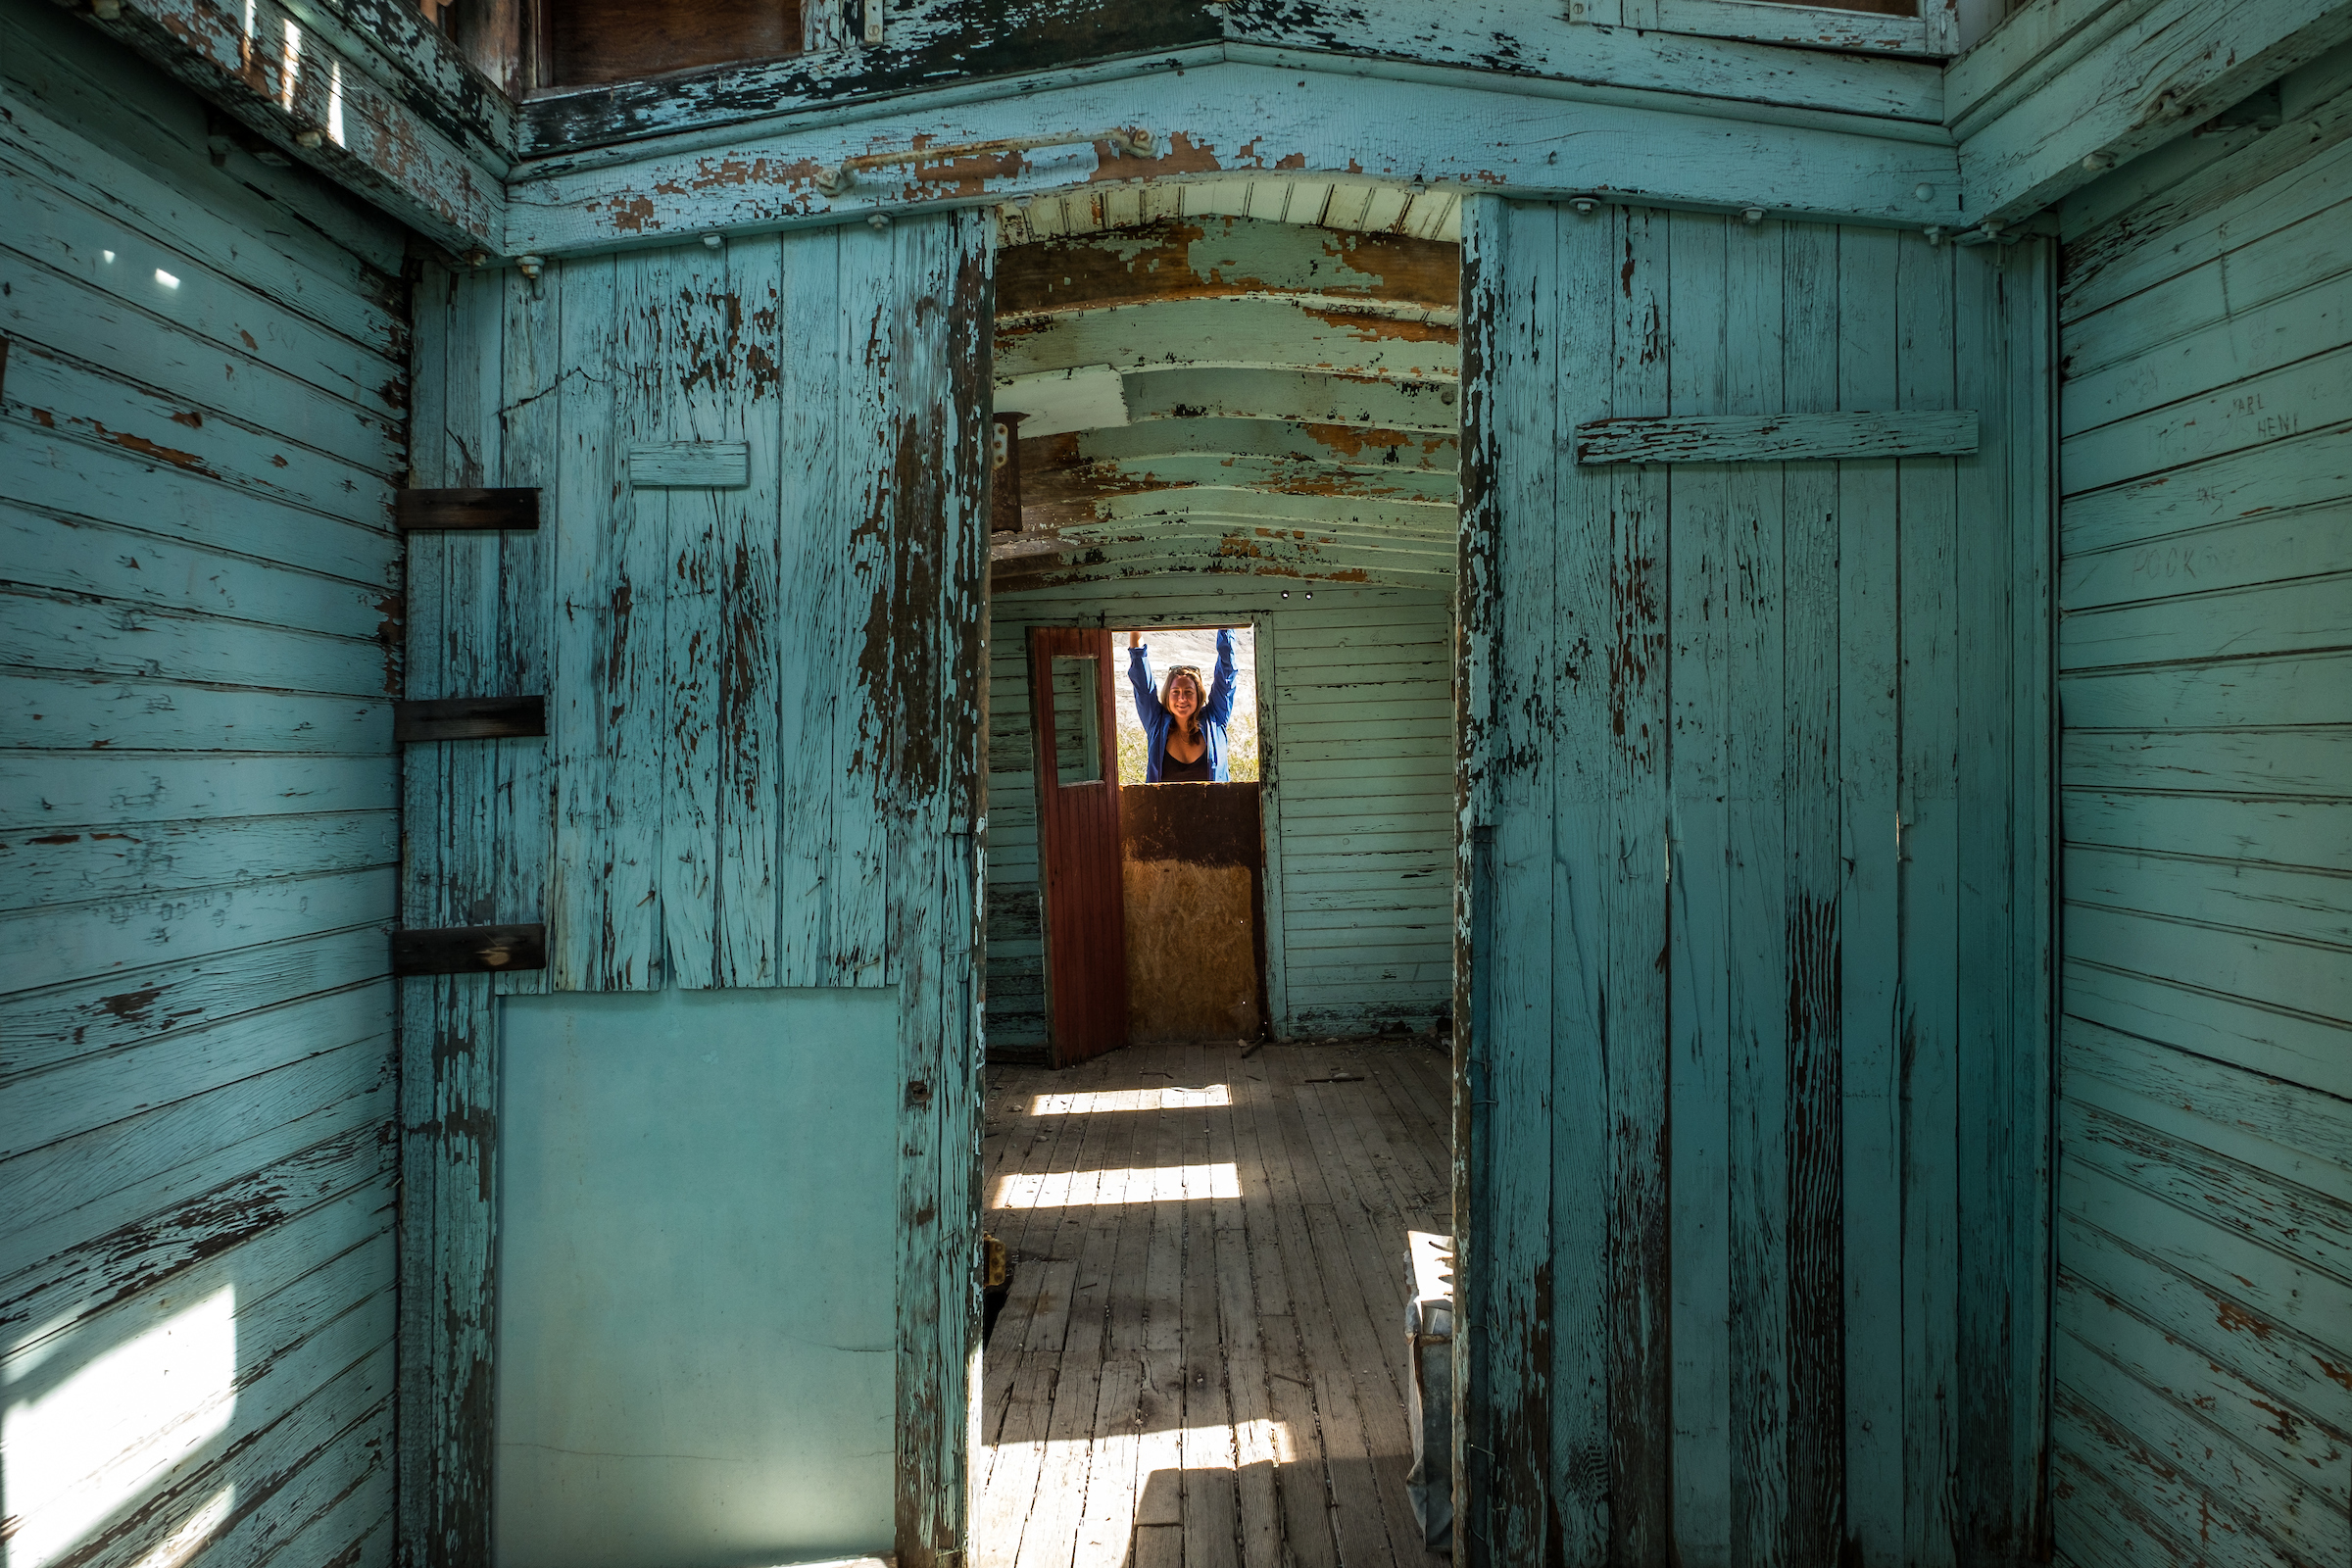 At an old rail car at the Rhyolite Ghost Town on the Nevada side of Death Valley National Park bordering California